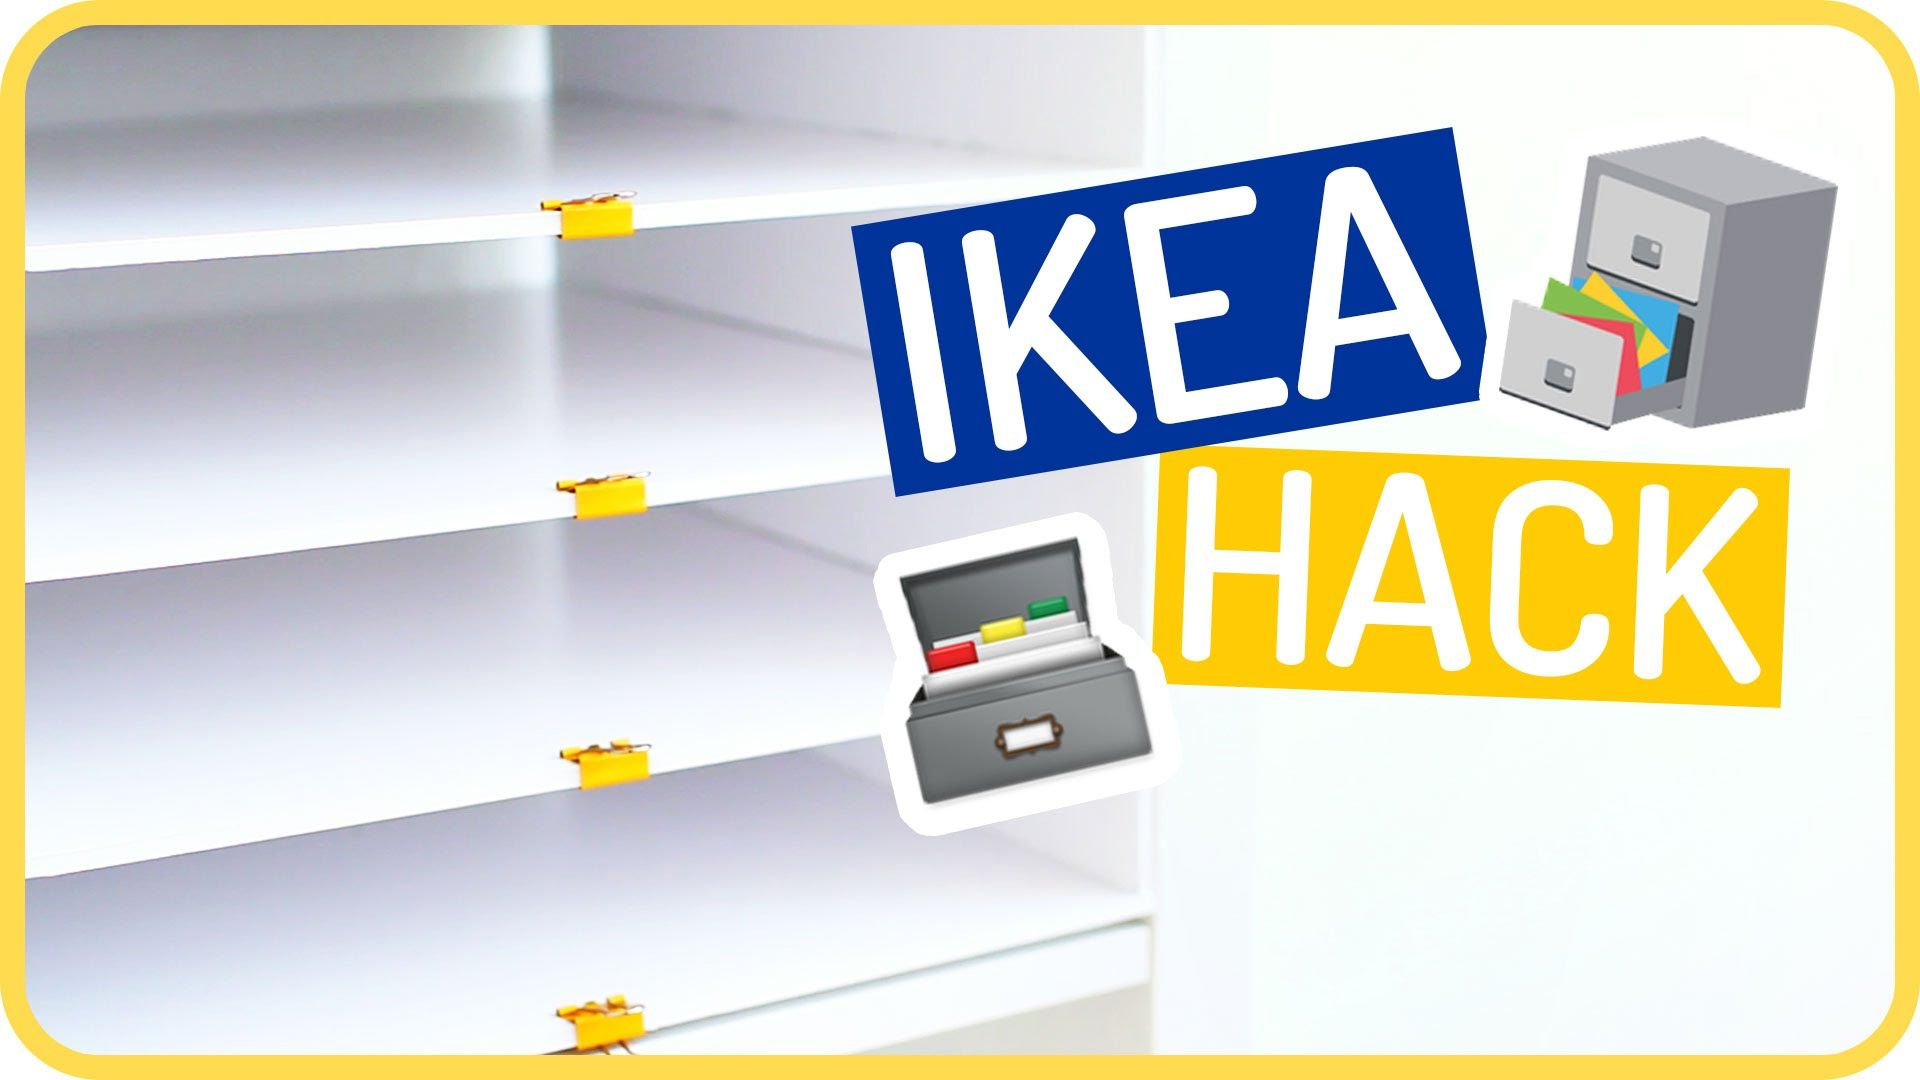 Regal Basteln Ikea Hack Kallax Regal Einsatz By Sissi Youtube Ideen